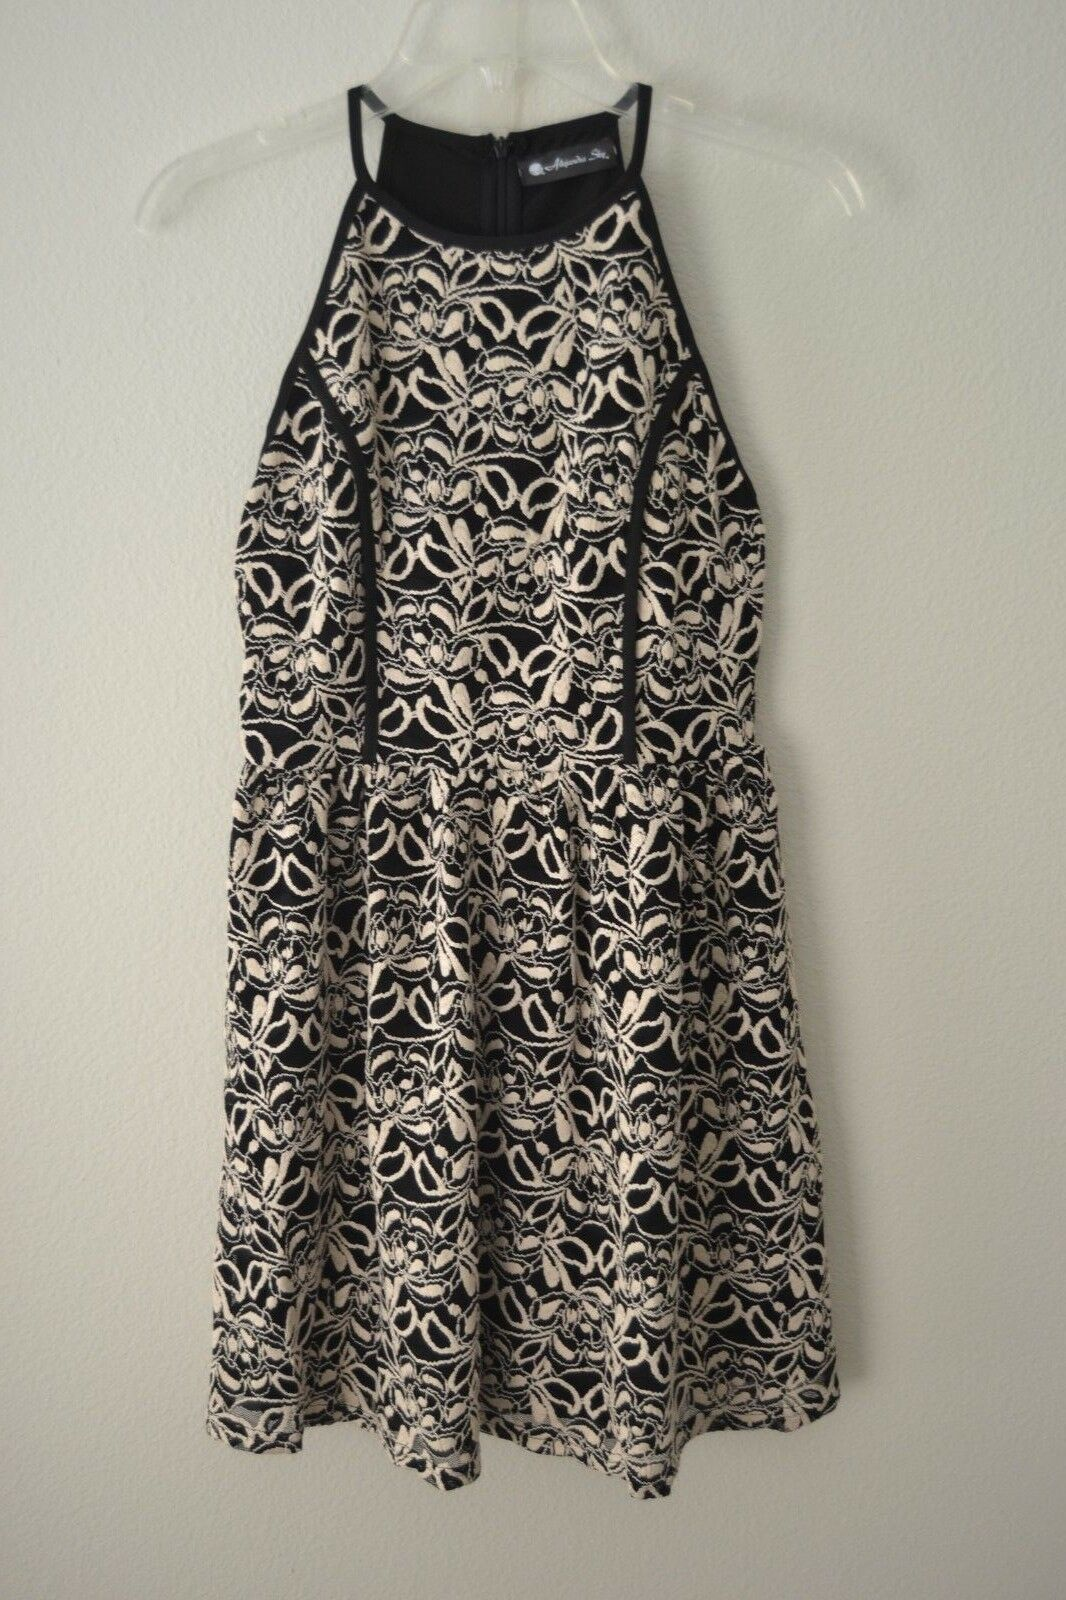 Alejandra Sky damen April Sleeveless Dress schwarz Ivory Dress Sz M